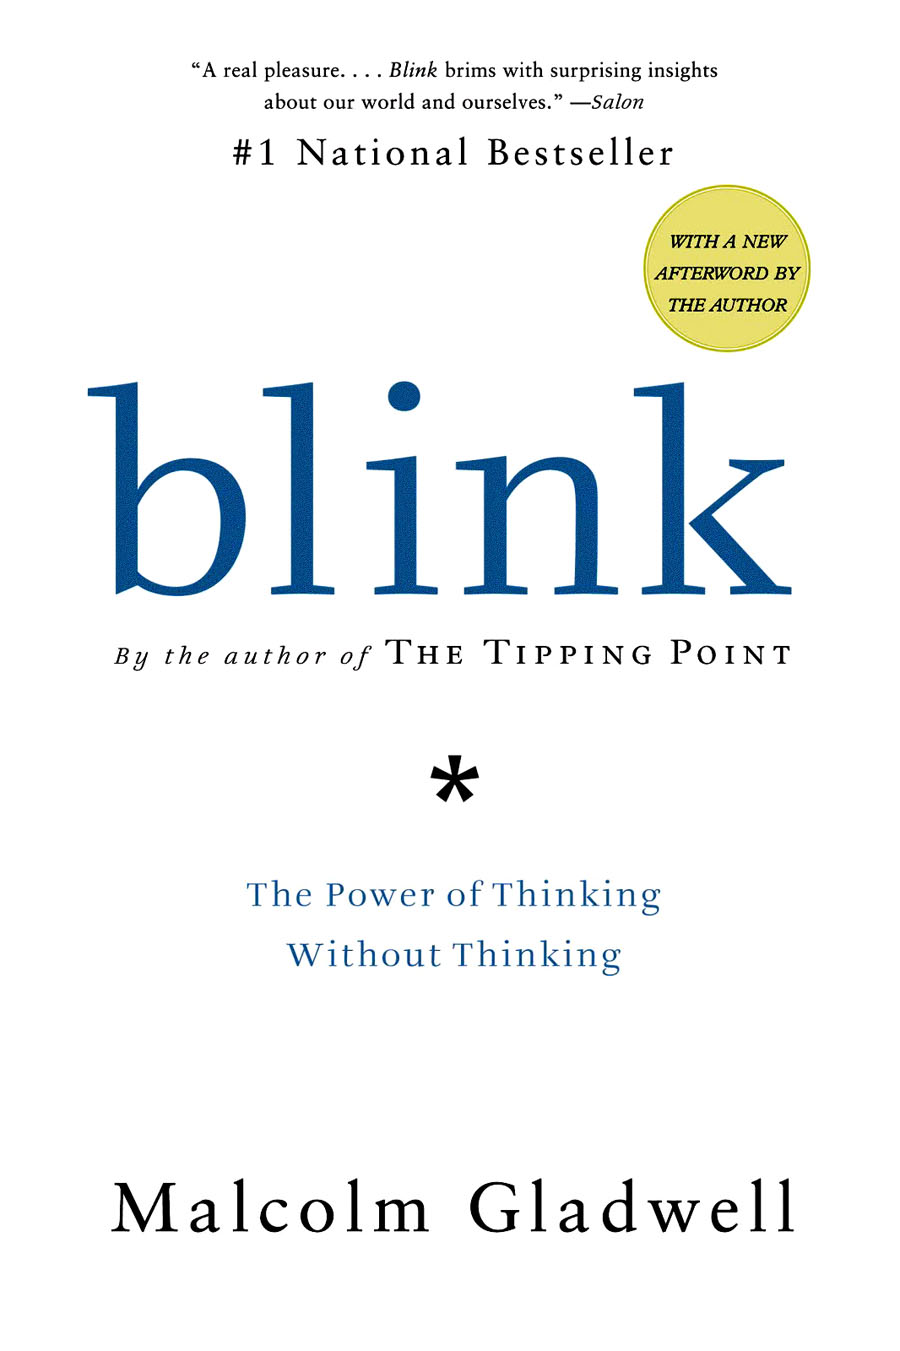 Blink by Malcolm Gladwell: Explore 20th-century in stories